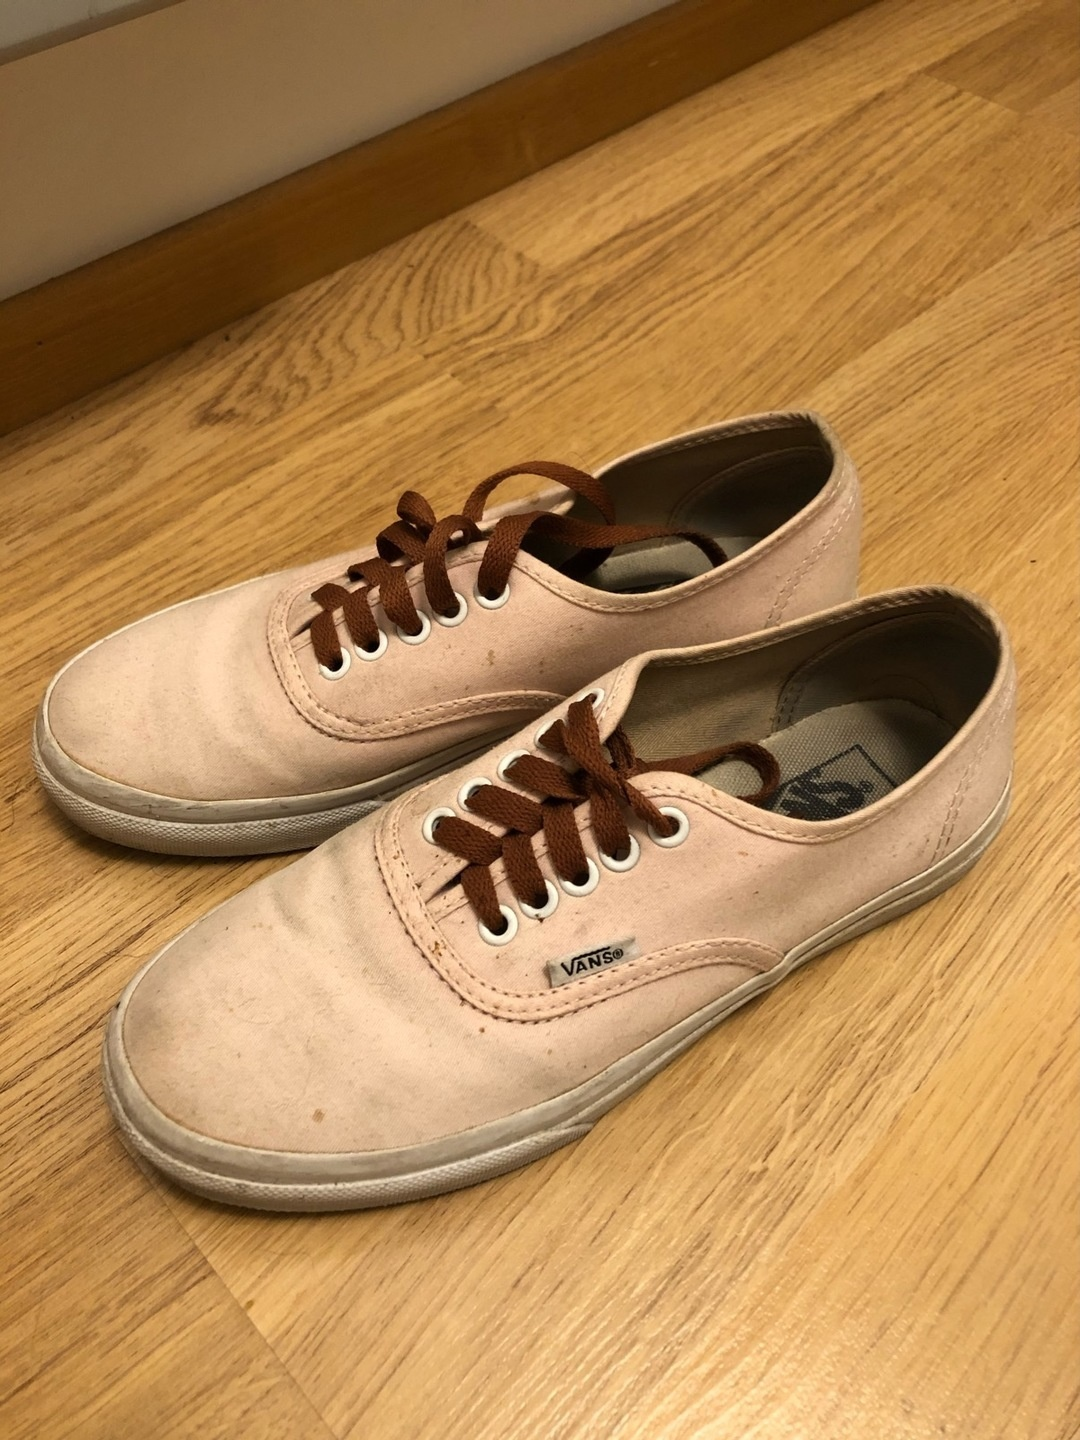 Damers sneakers - VANS photo 1